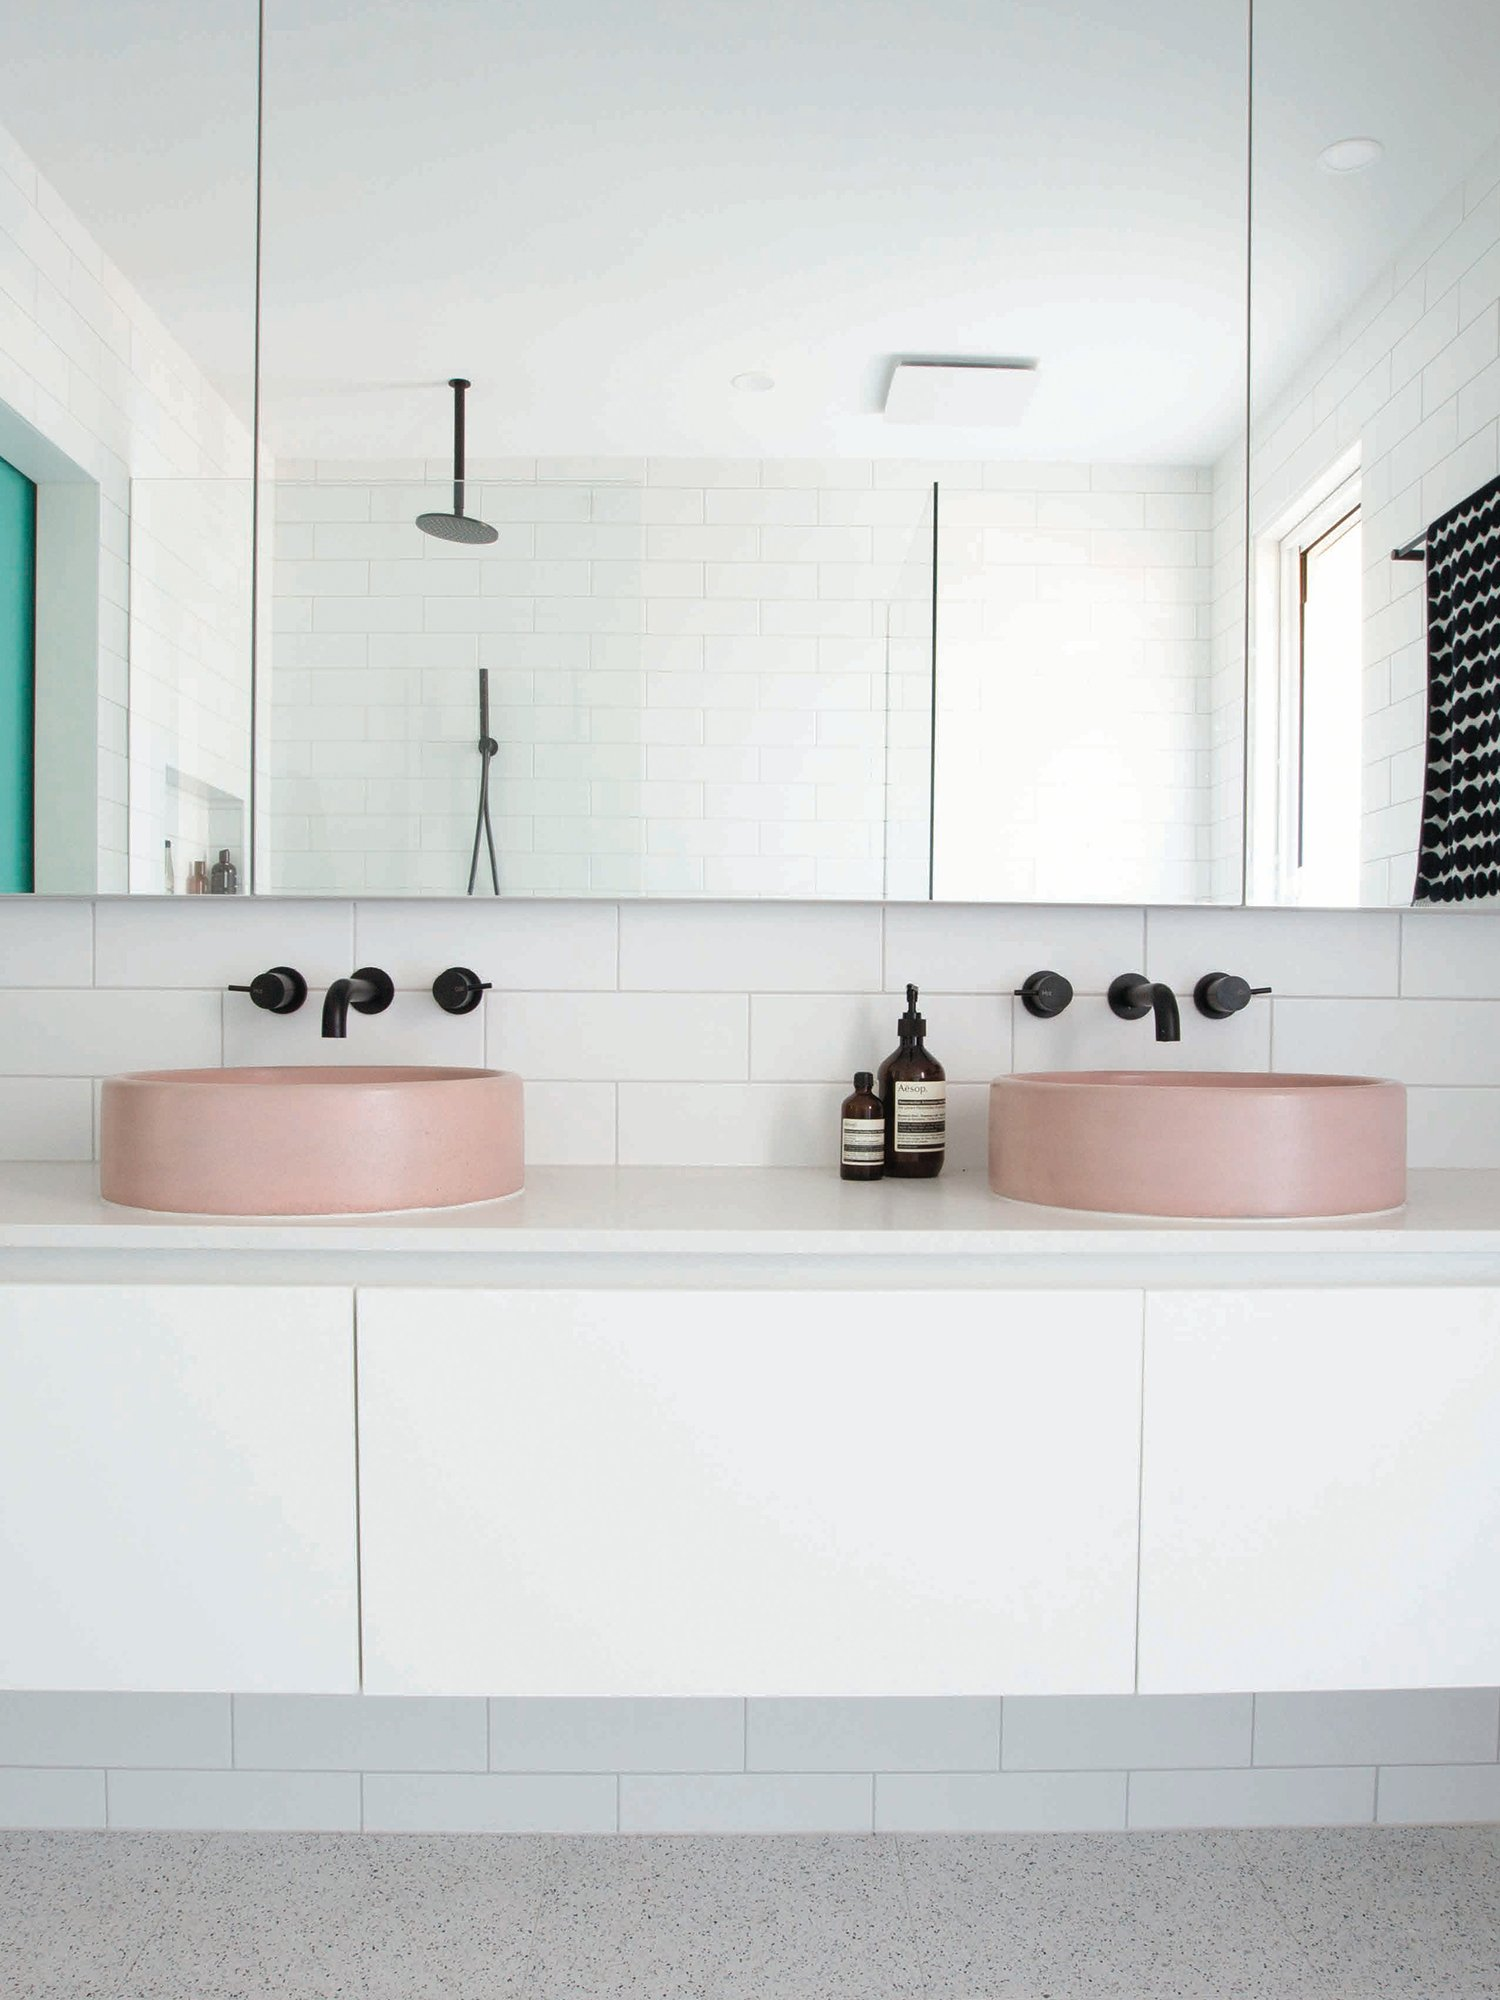 hemsley bath shoppe round pink coloured bathroom basin in white bathroom with black taps